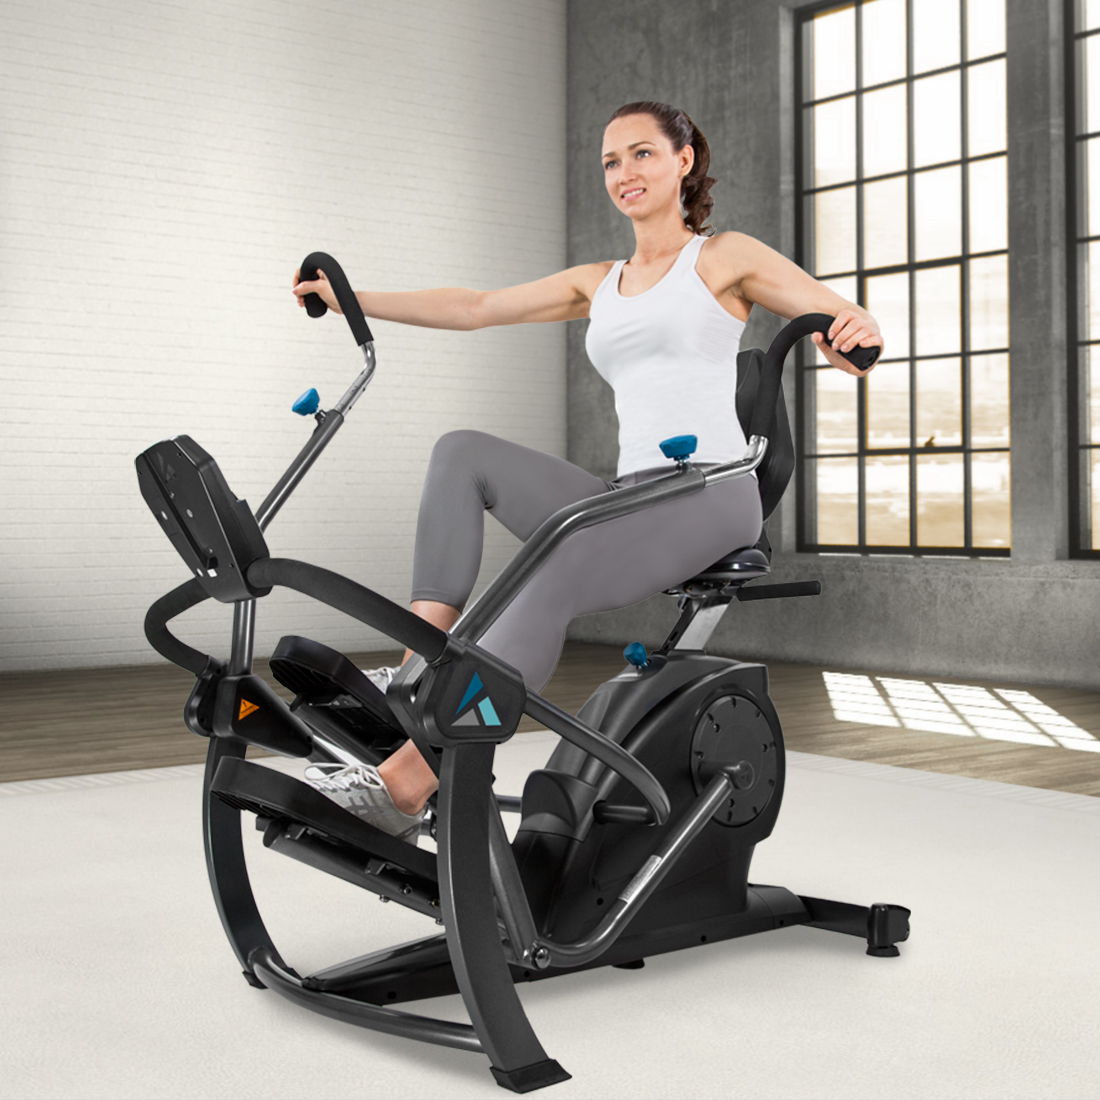 Free step recumbent cross trainer dimplex panel heater